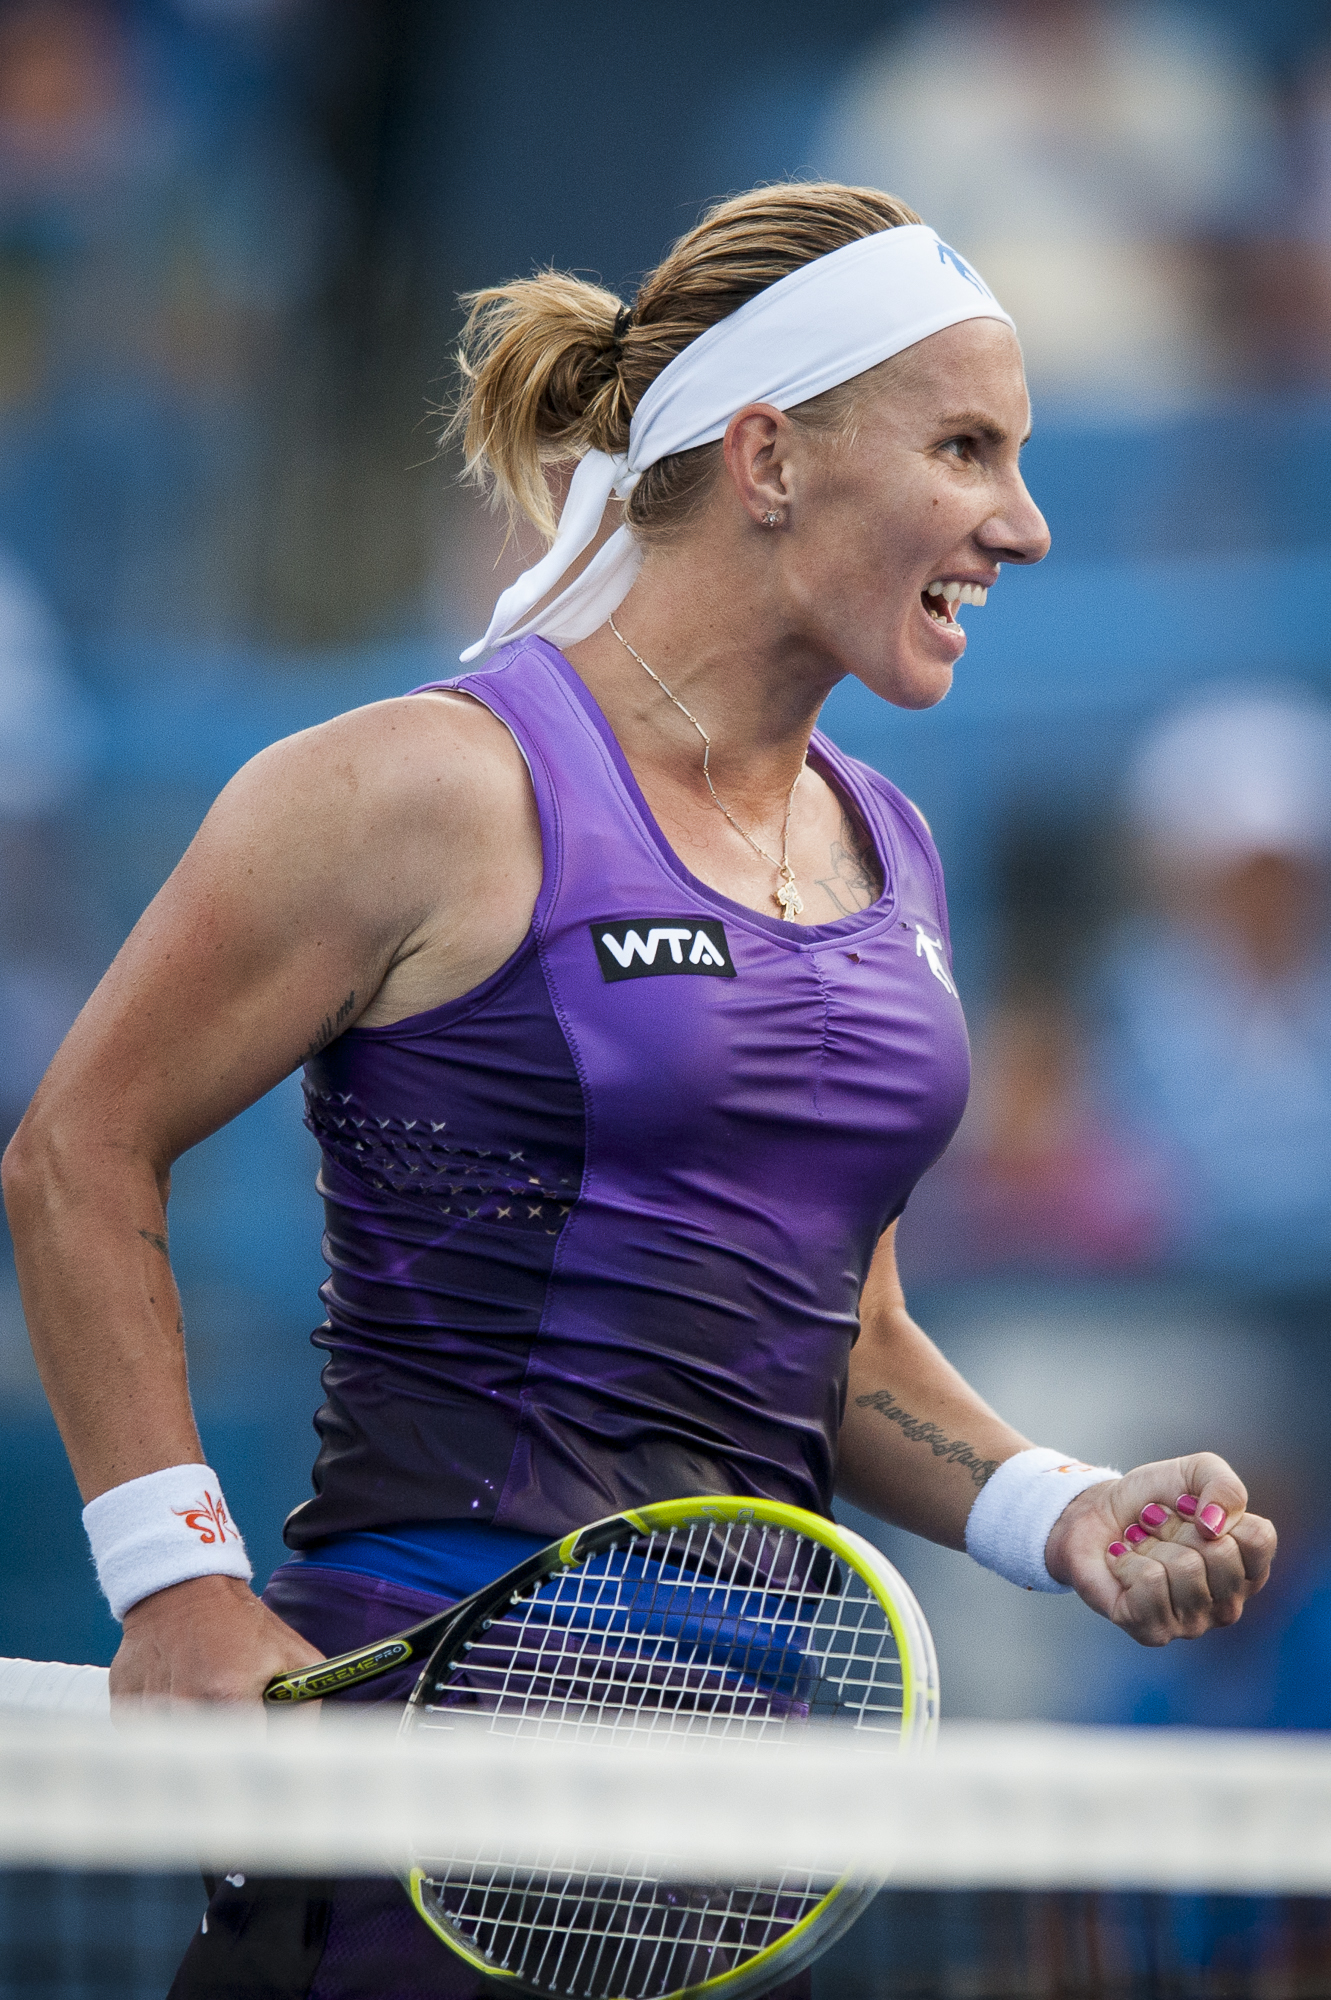 Svetlana Kuznetsova of Russia reacts during her finals singles match against Kurumi Nara of Japan at the Citi Open ATP tennis tournament in Washington, DC, USA, 3 Aug 2014. Kuznetsova won the women's final 6-3, 4-6, 6-4.